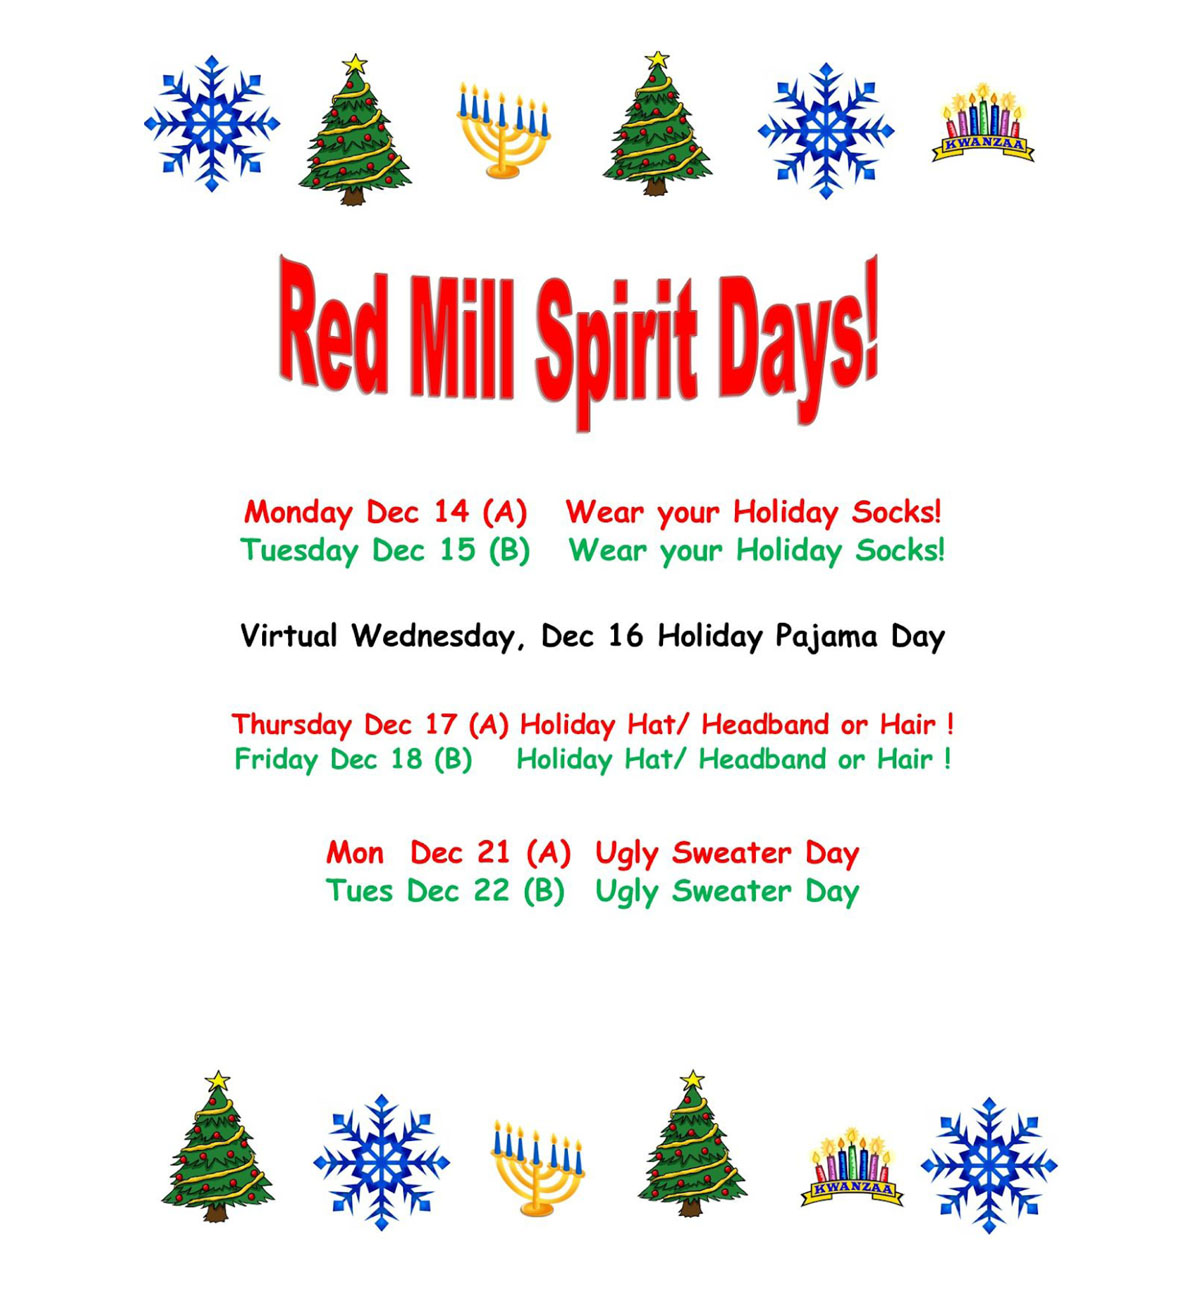 Red Mill Holiday Spirit Days flyer